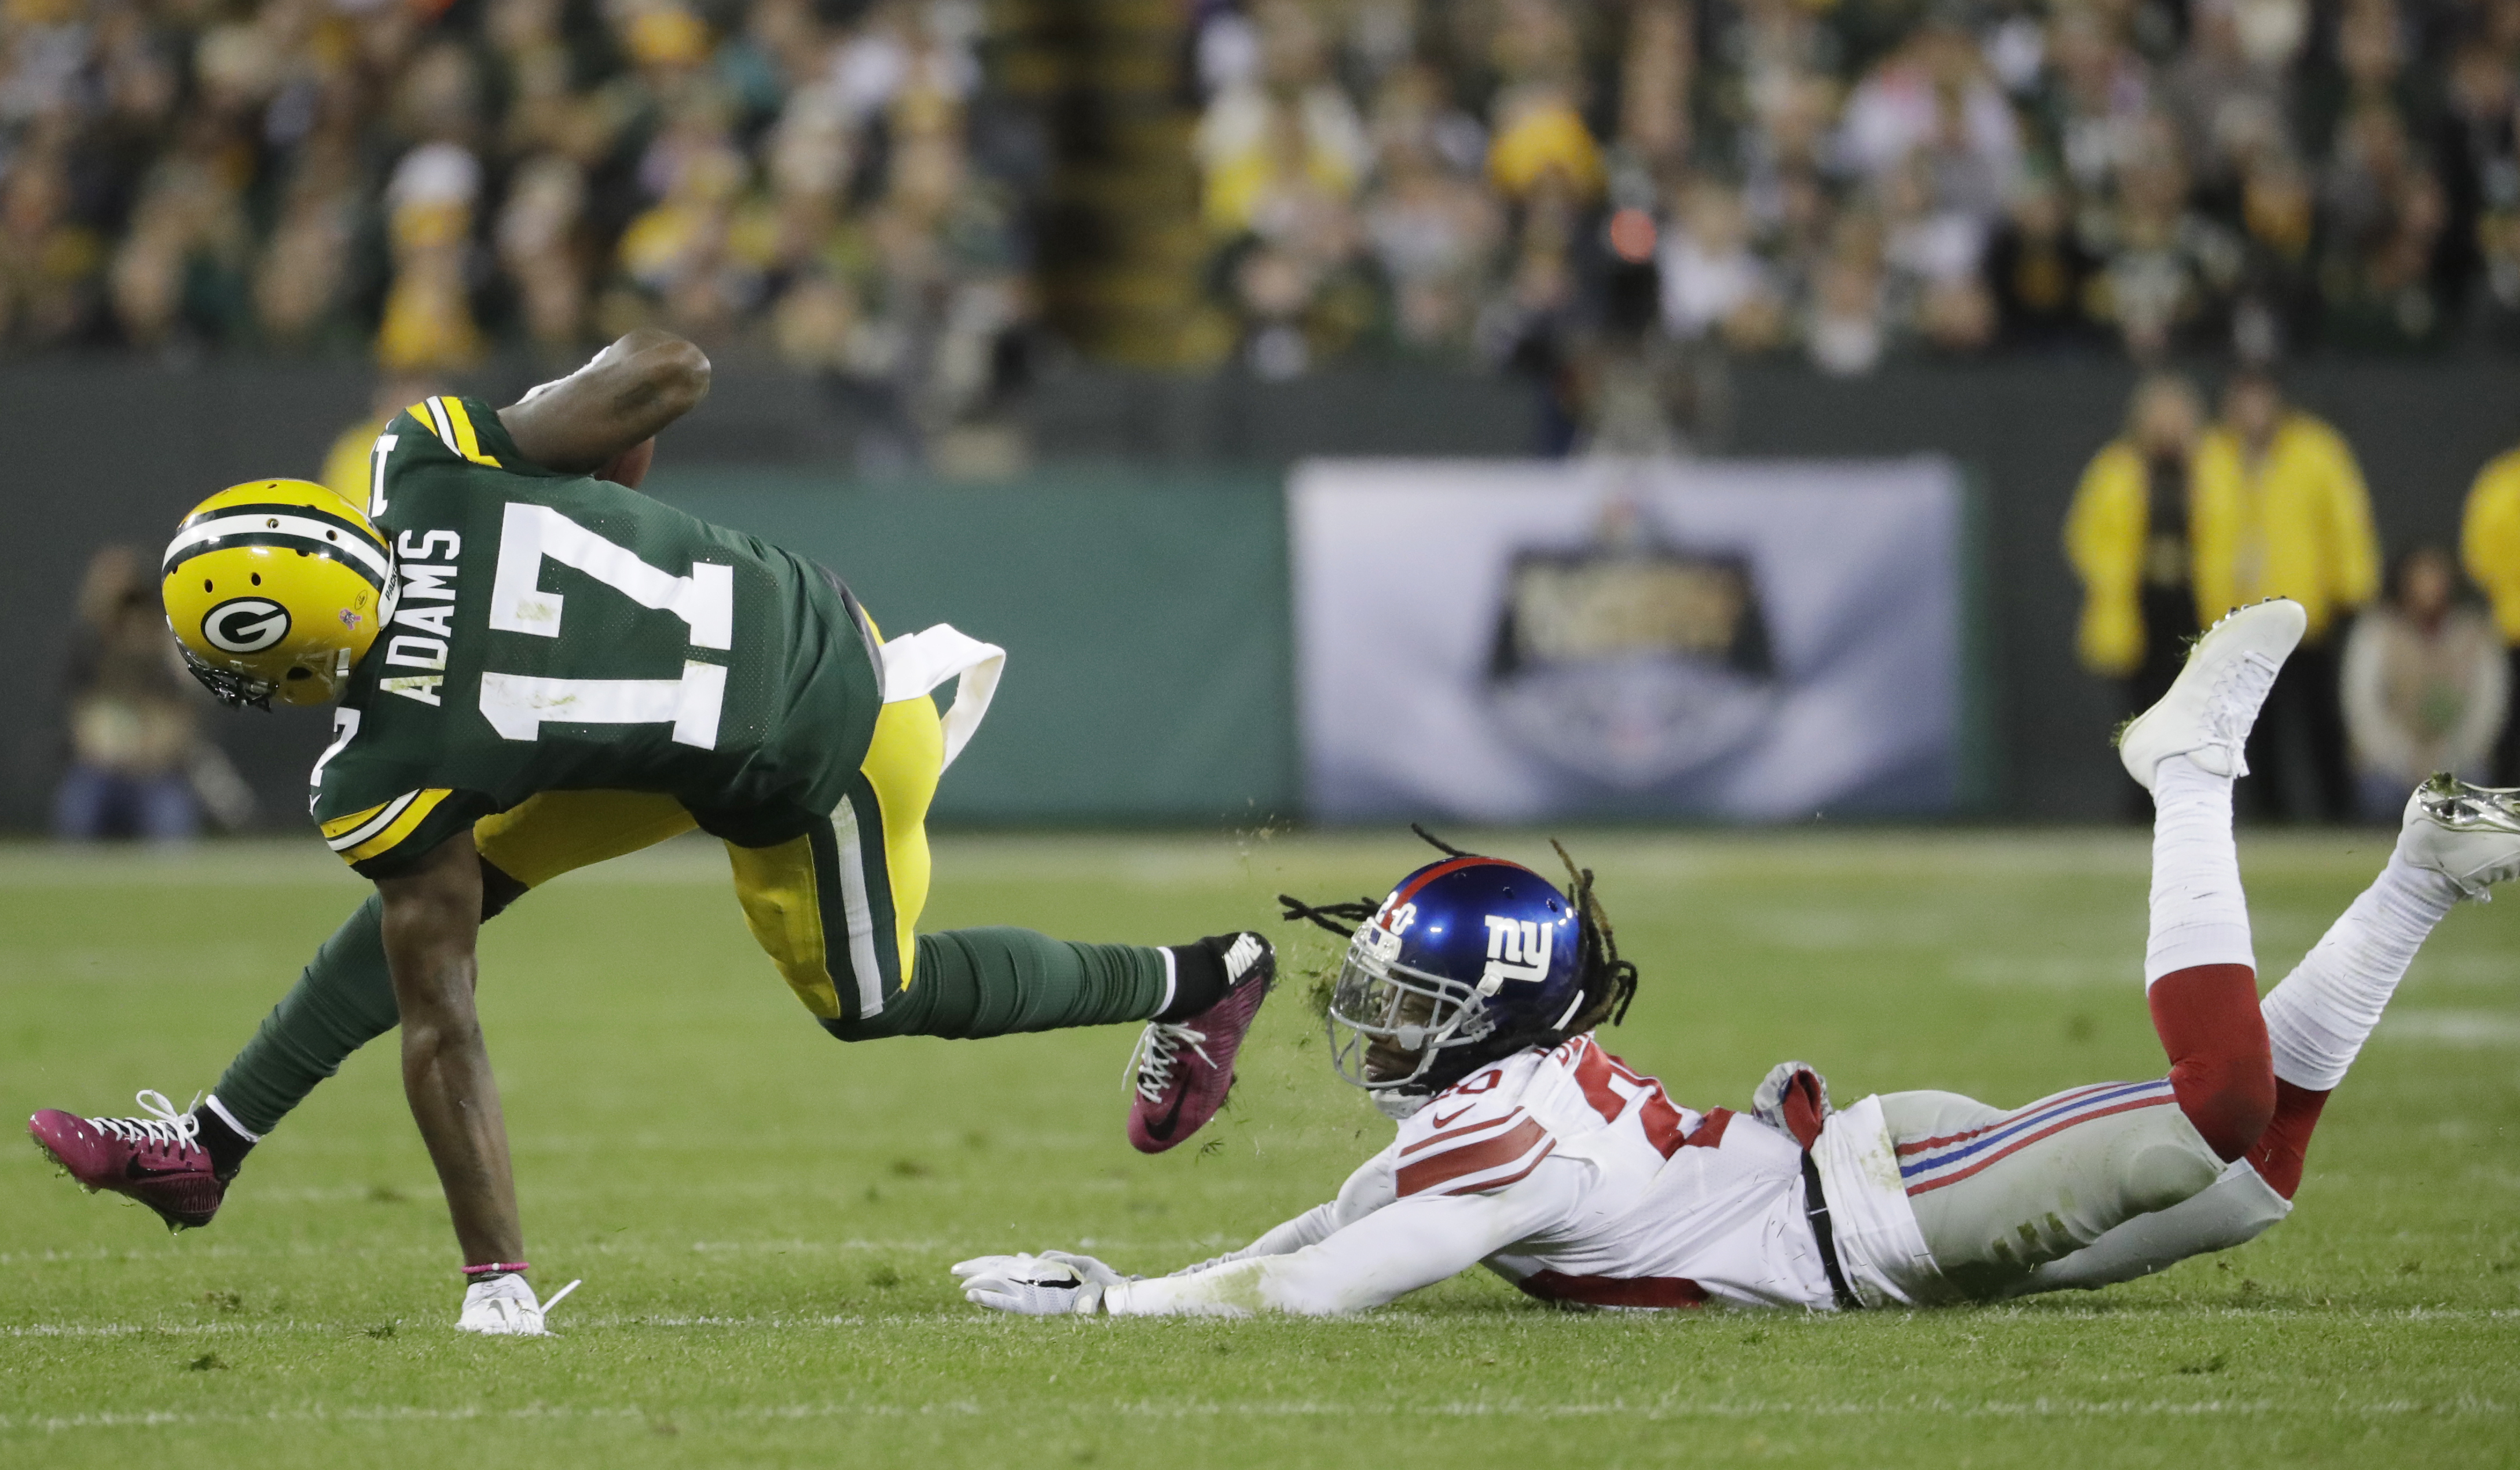 Green Bay Packers' Davante Adams gets past New York Giants' Janoris Jenkins after catching a pass during the second half of an NFL football game Sunday, Oct. 9, 2016, in Green Bay, Wis. (AP Photo/Morry Gash)